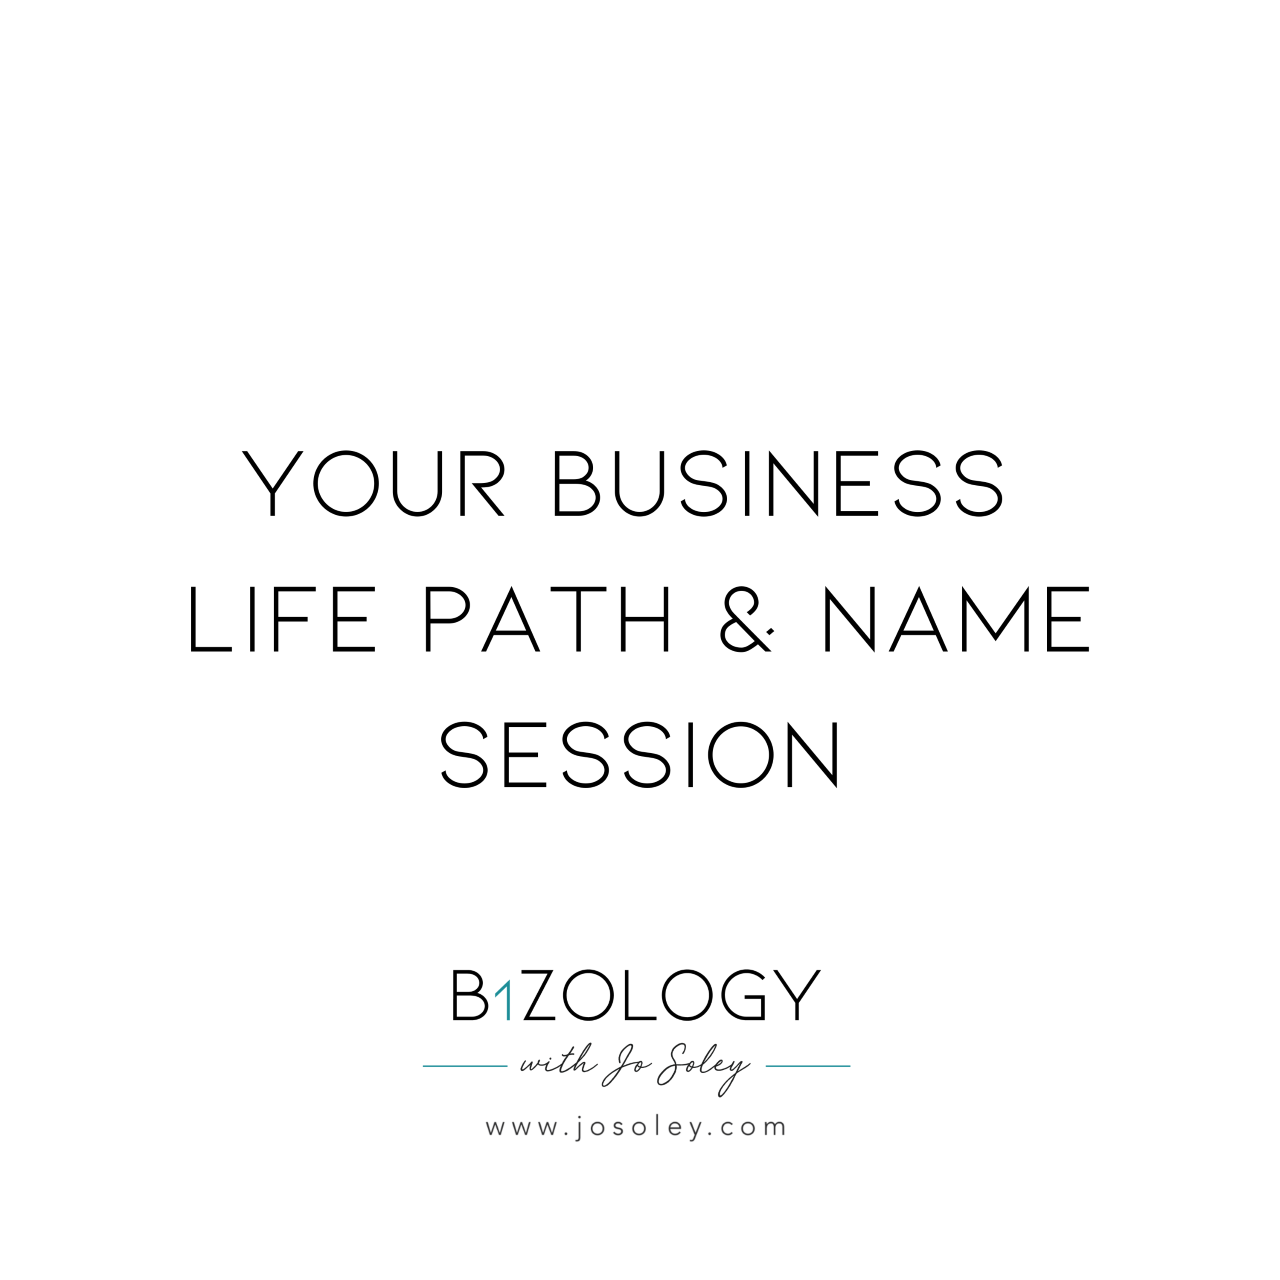 Bizology Life Path & Name